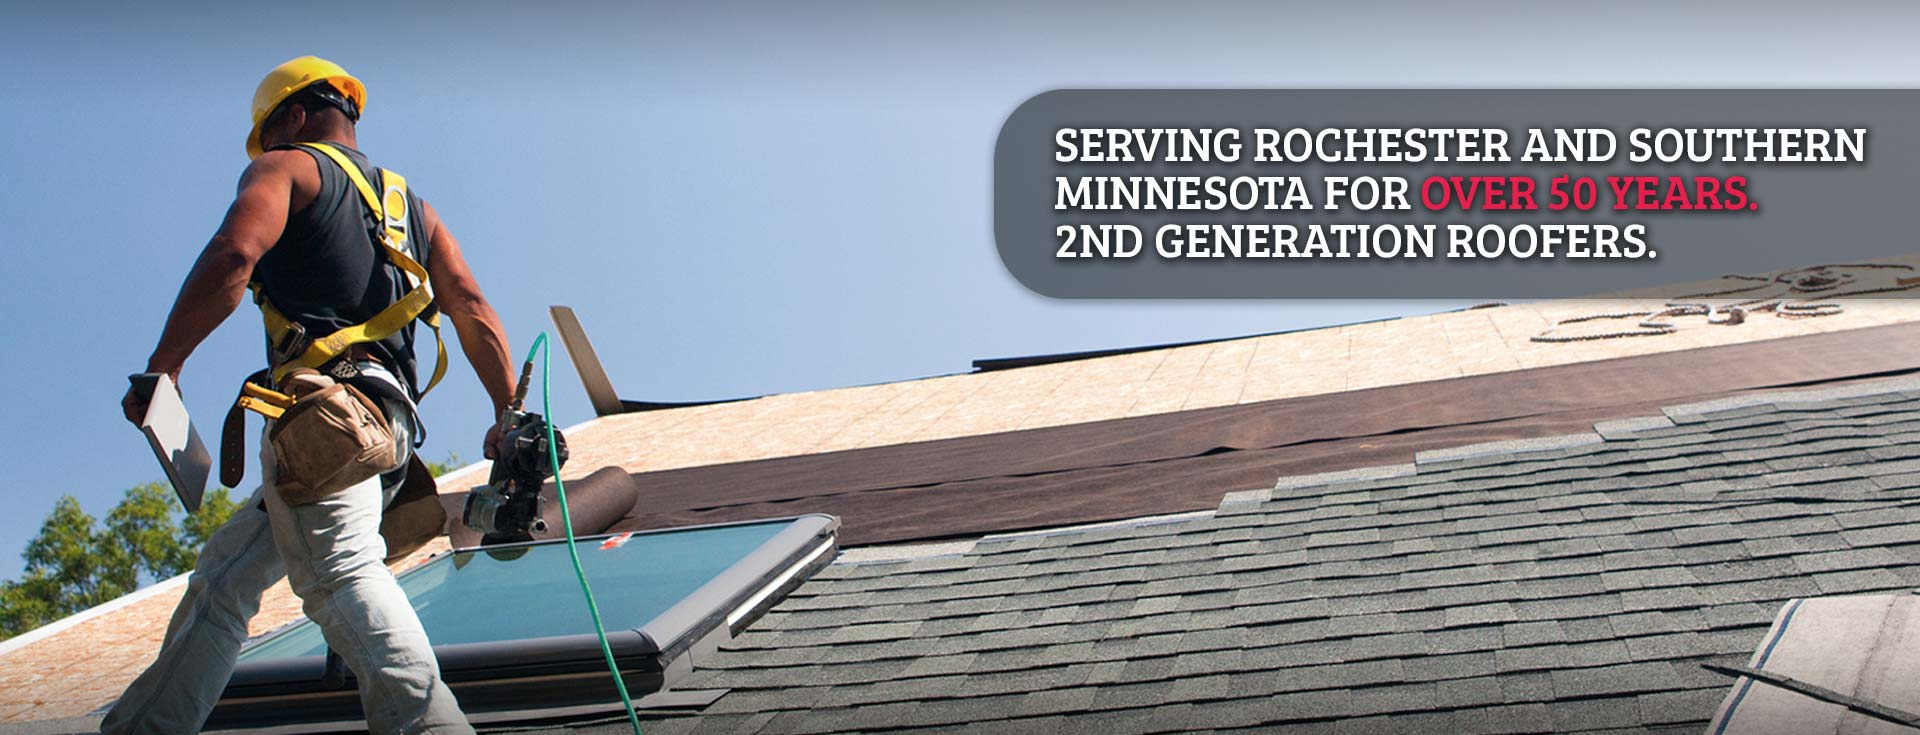 Roofing in Rochster Minnesota